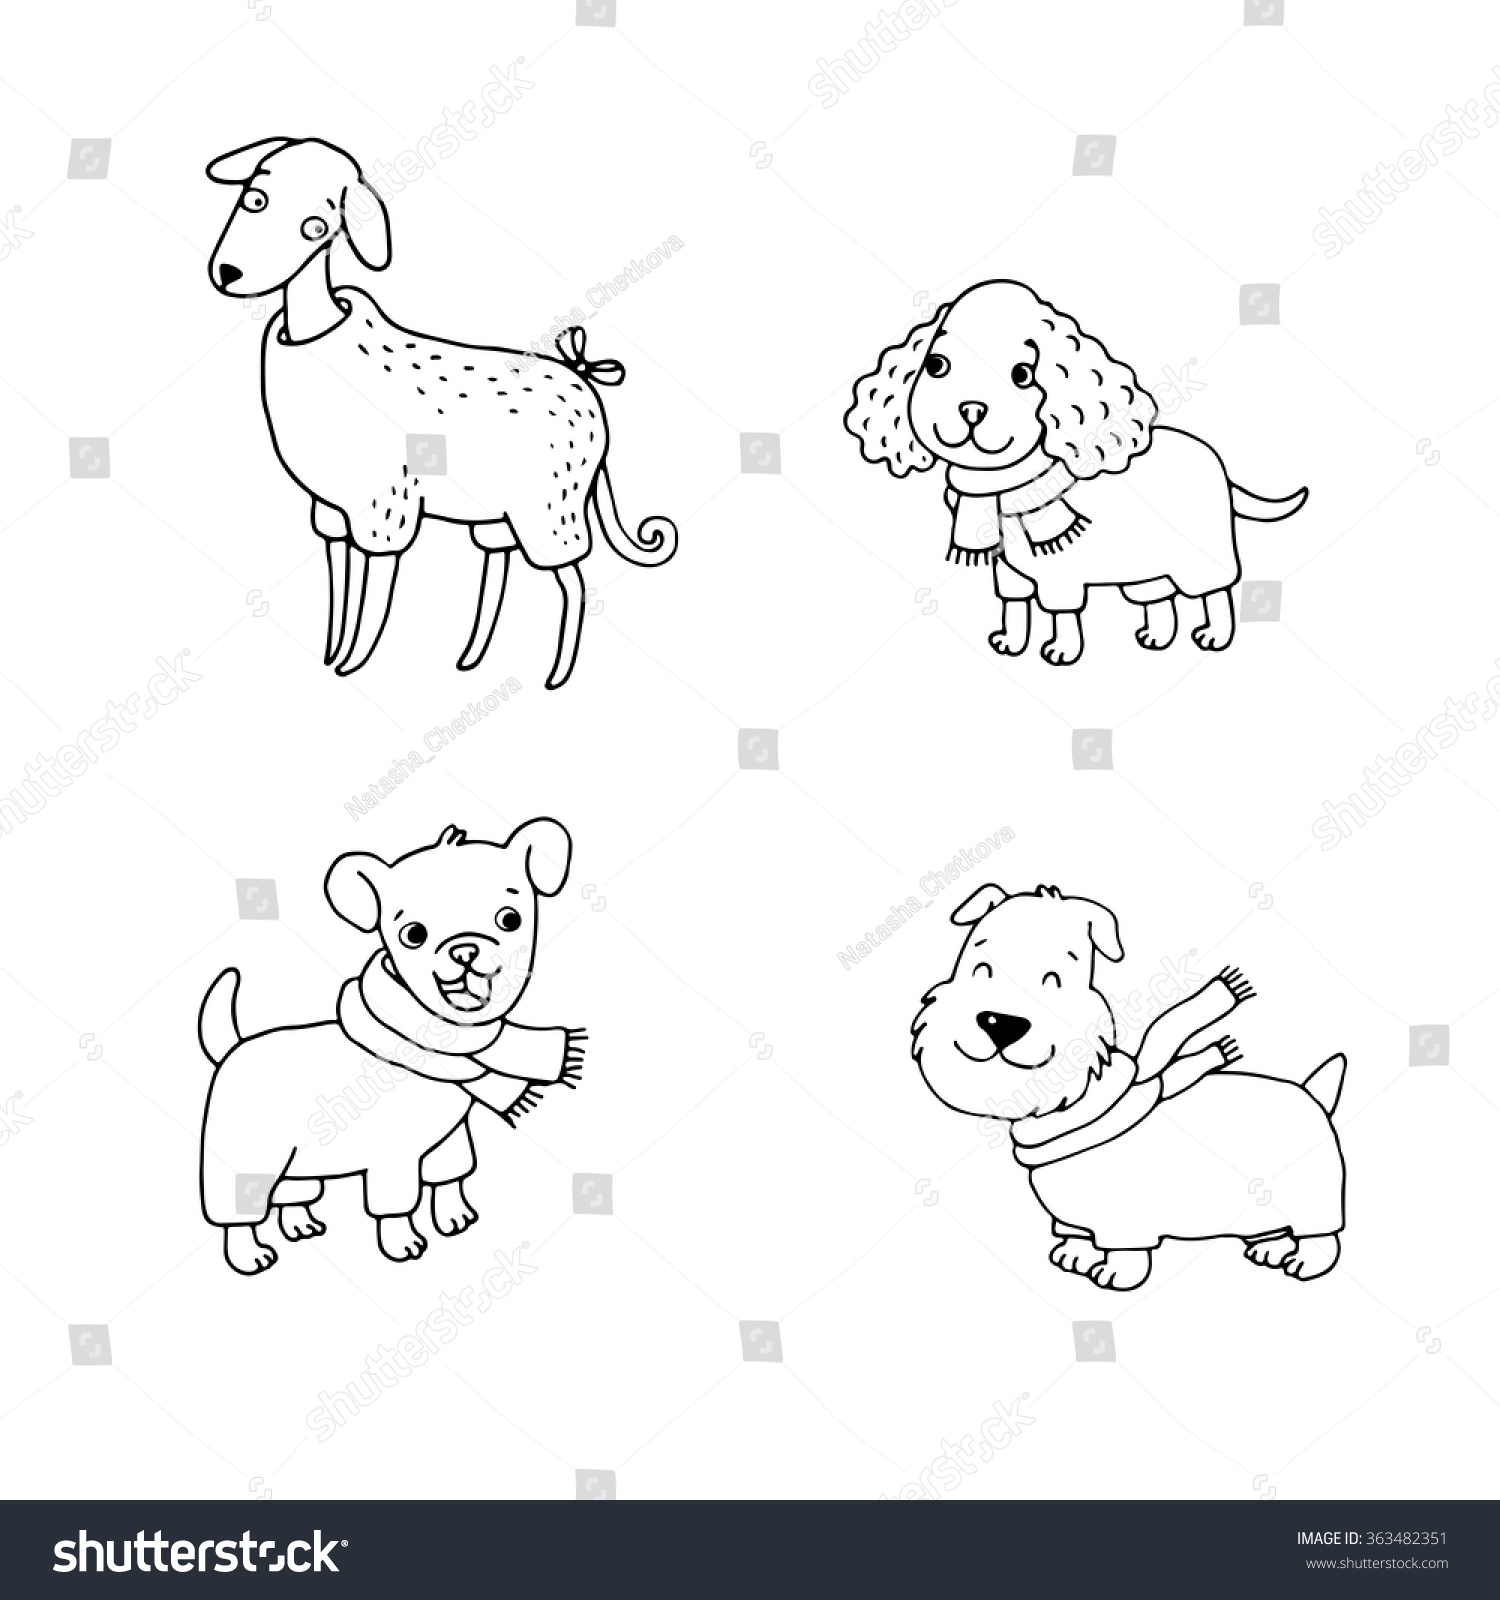 Cute Cartoon Dogs Winter Clothes Italian Stock Vector 363482351